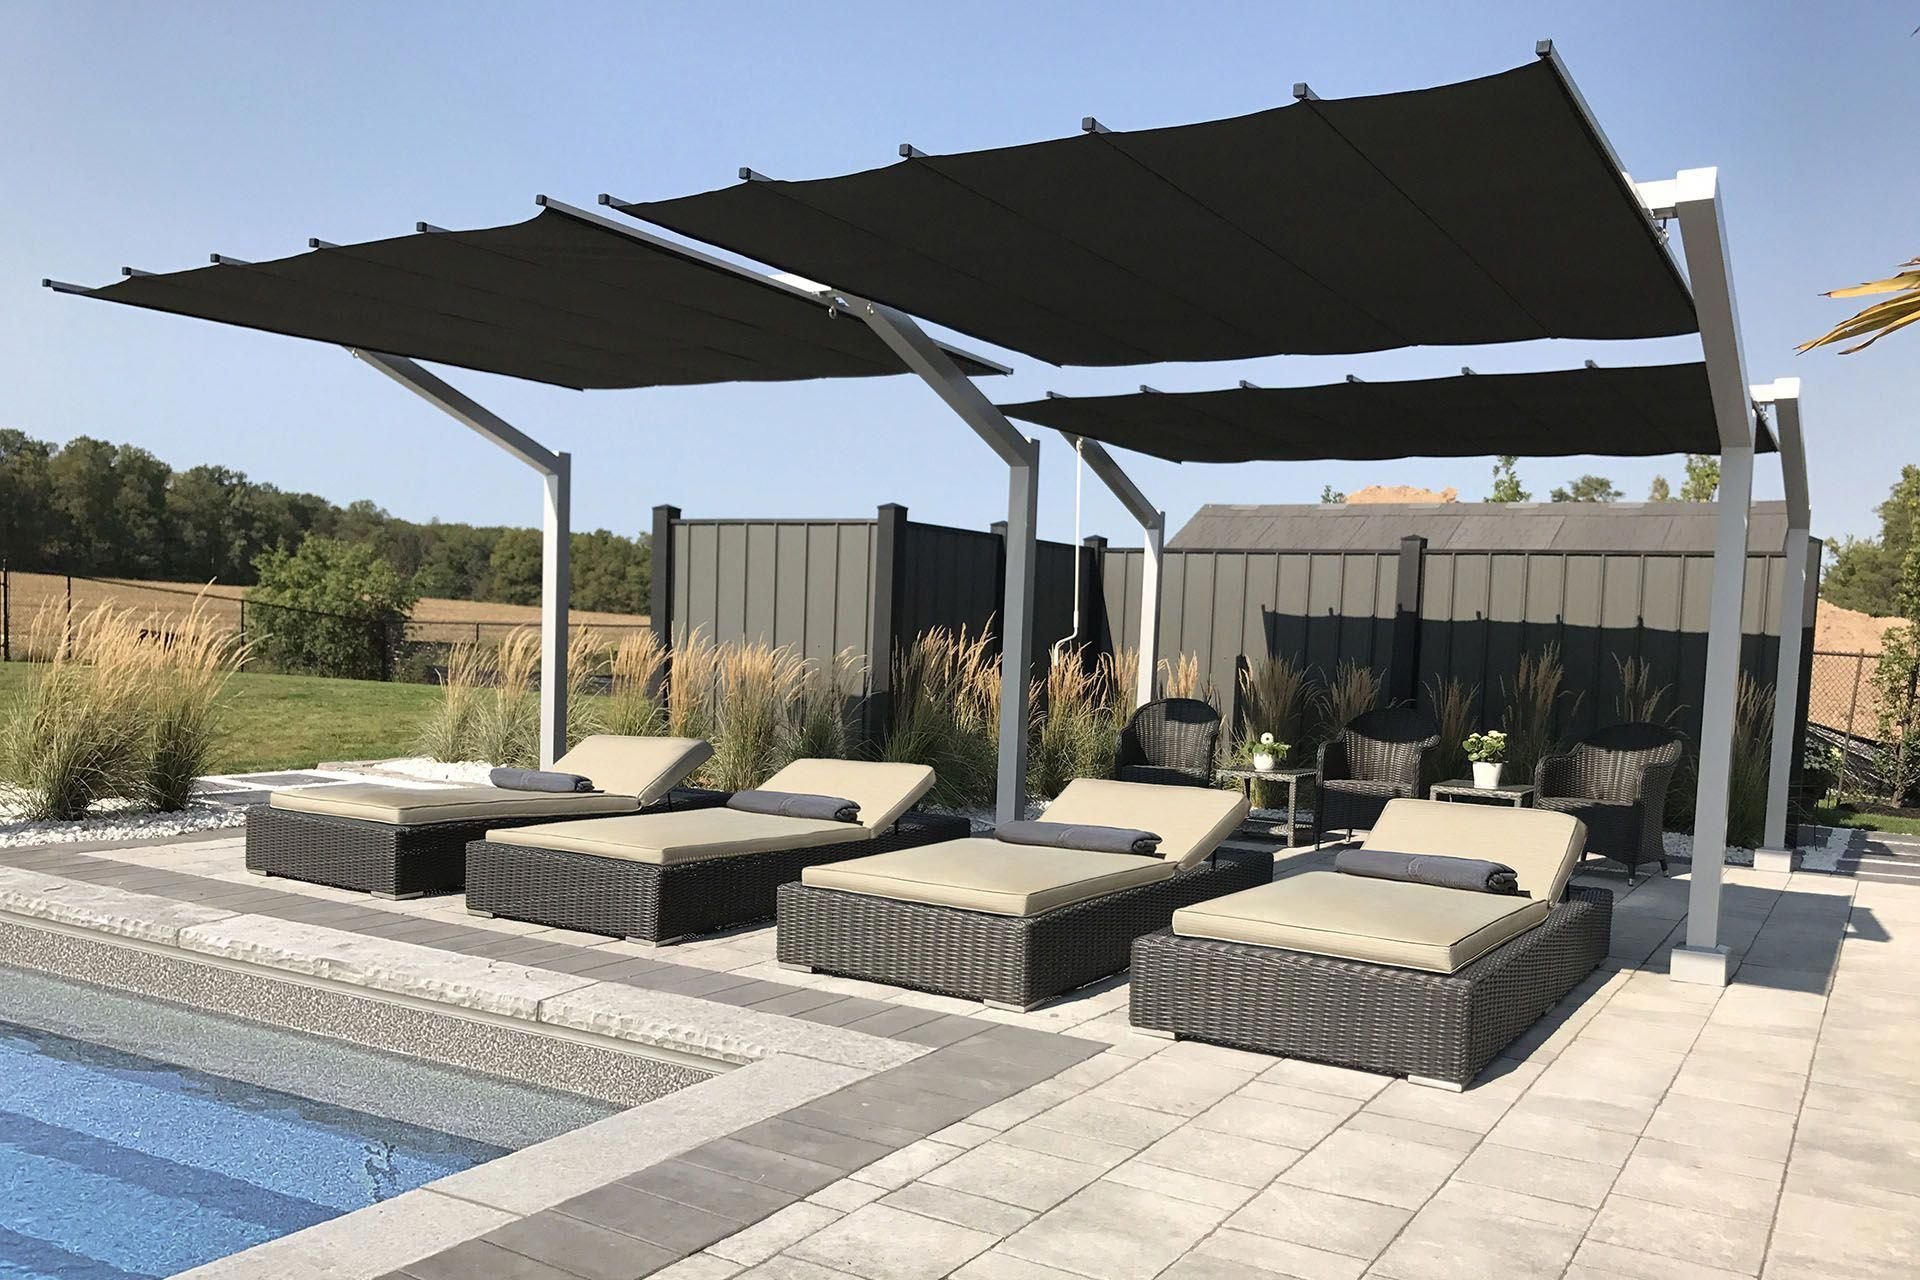 Shadefx S Newest Product The Freestanding Retractable Canopy Offers Functional Shade And Wind Resistant Coverage When Lounging By Pool Pergolasizes